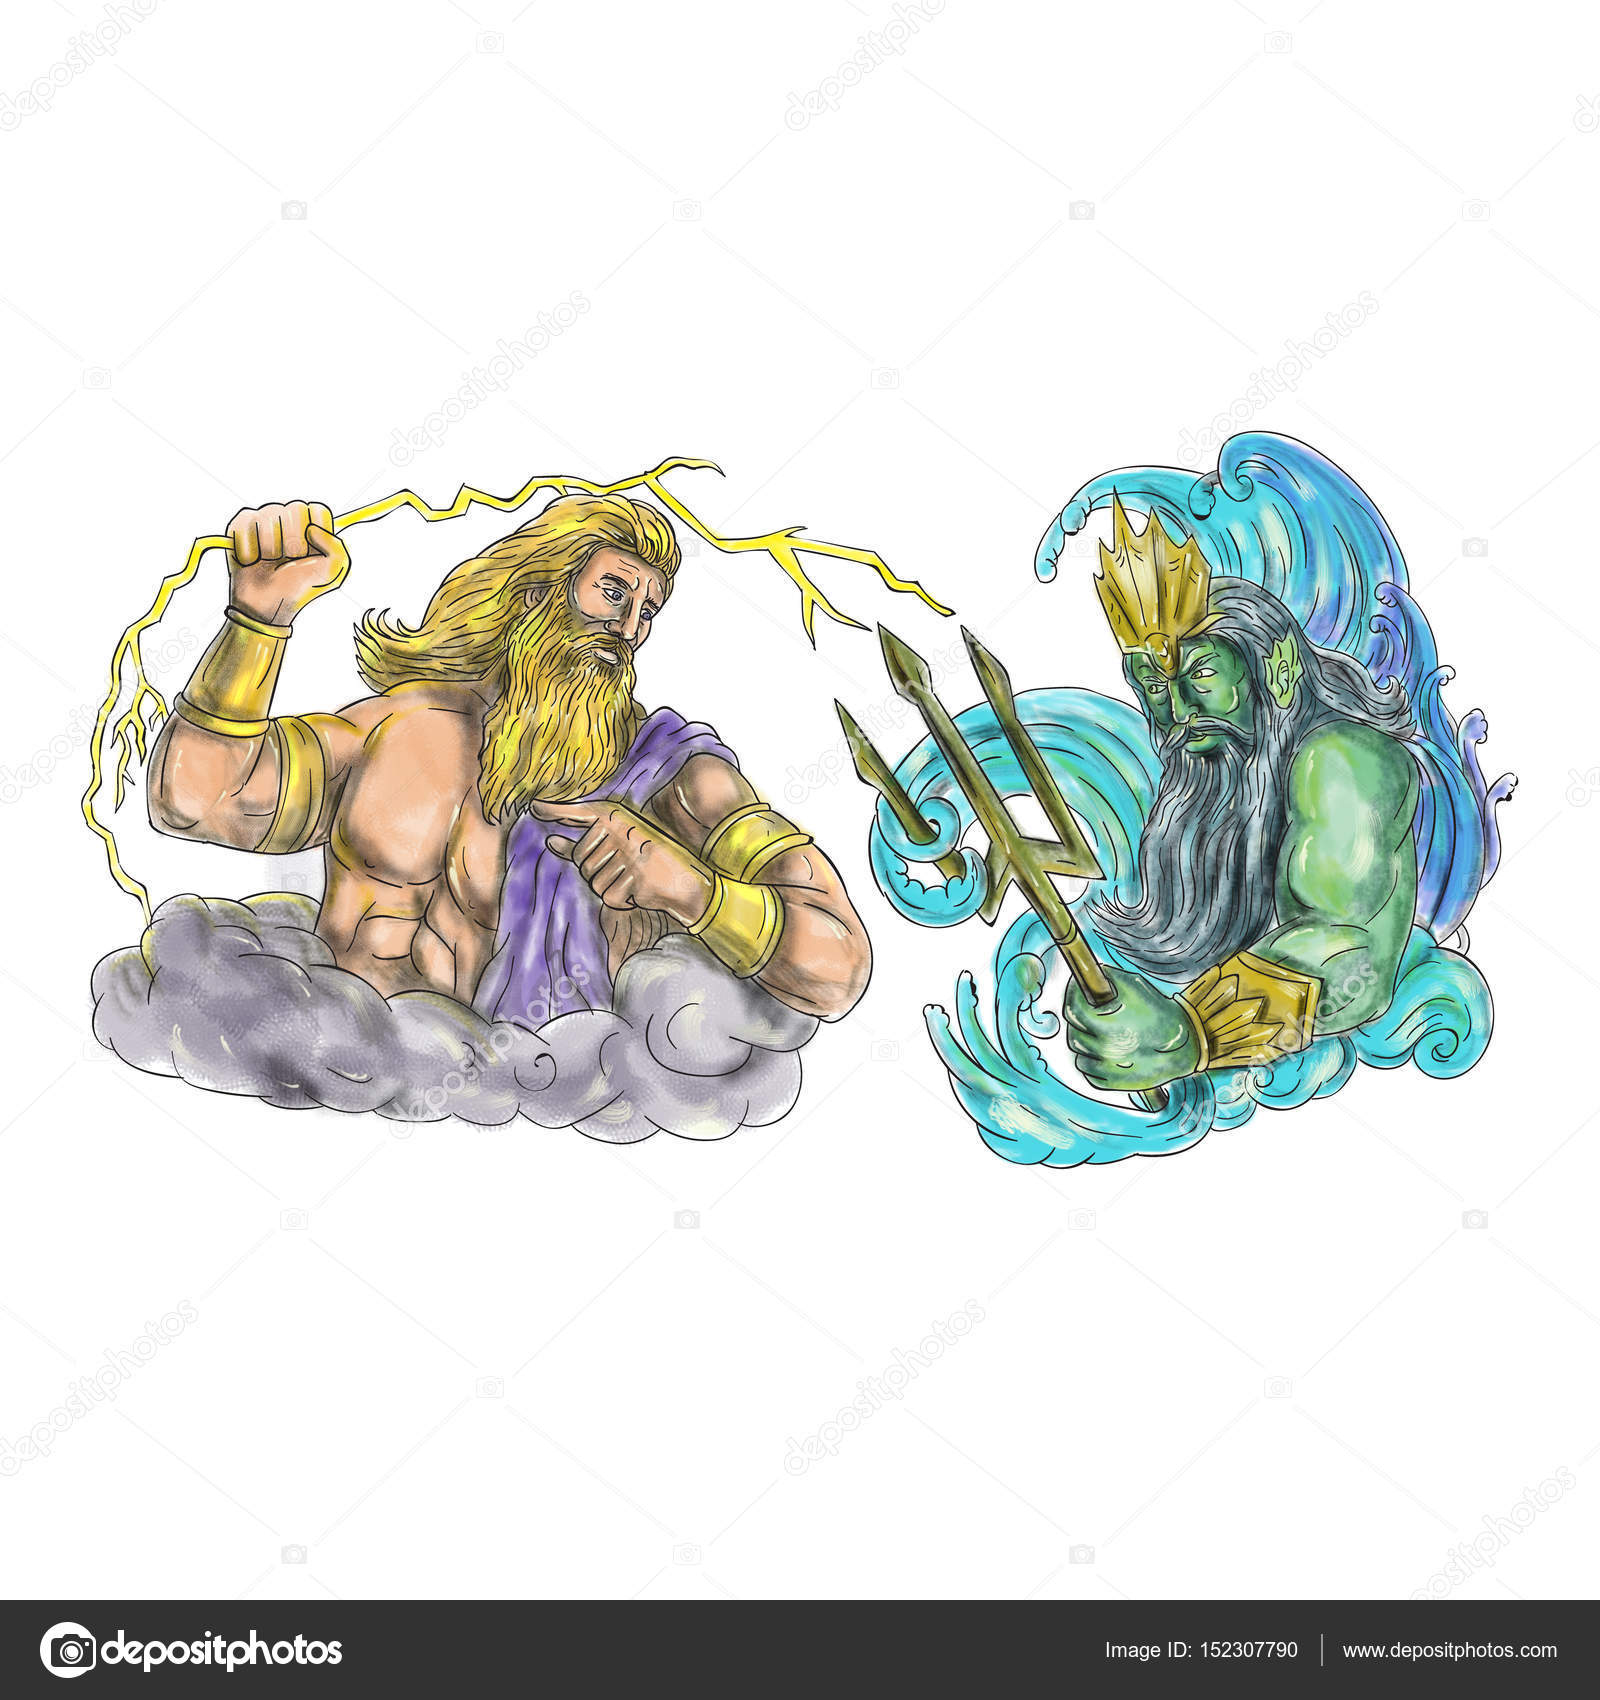 zeus vs poseidon Poseidon is part of the olympian pantheon as the god of the seas and was worshipped by the atlanteans as father neptune poseidon was the second born son of the titan deities cronus and rhea poseidon sided with his brothers zeus and hades in the war between the olympians and the titans he and.